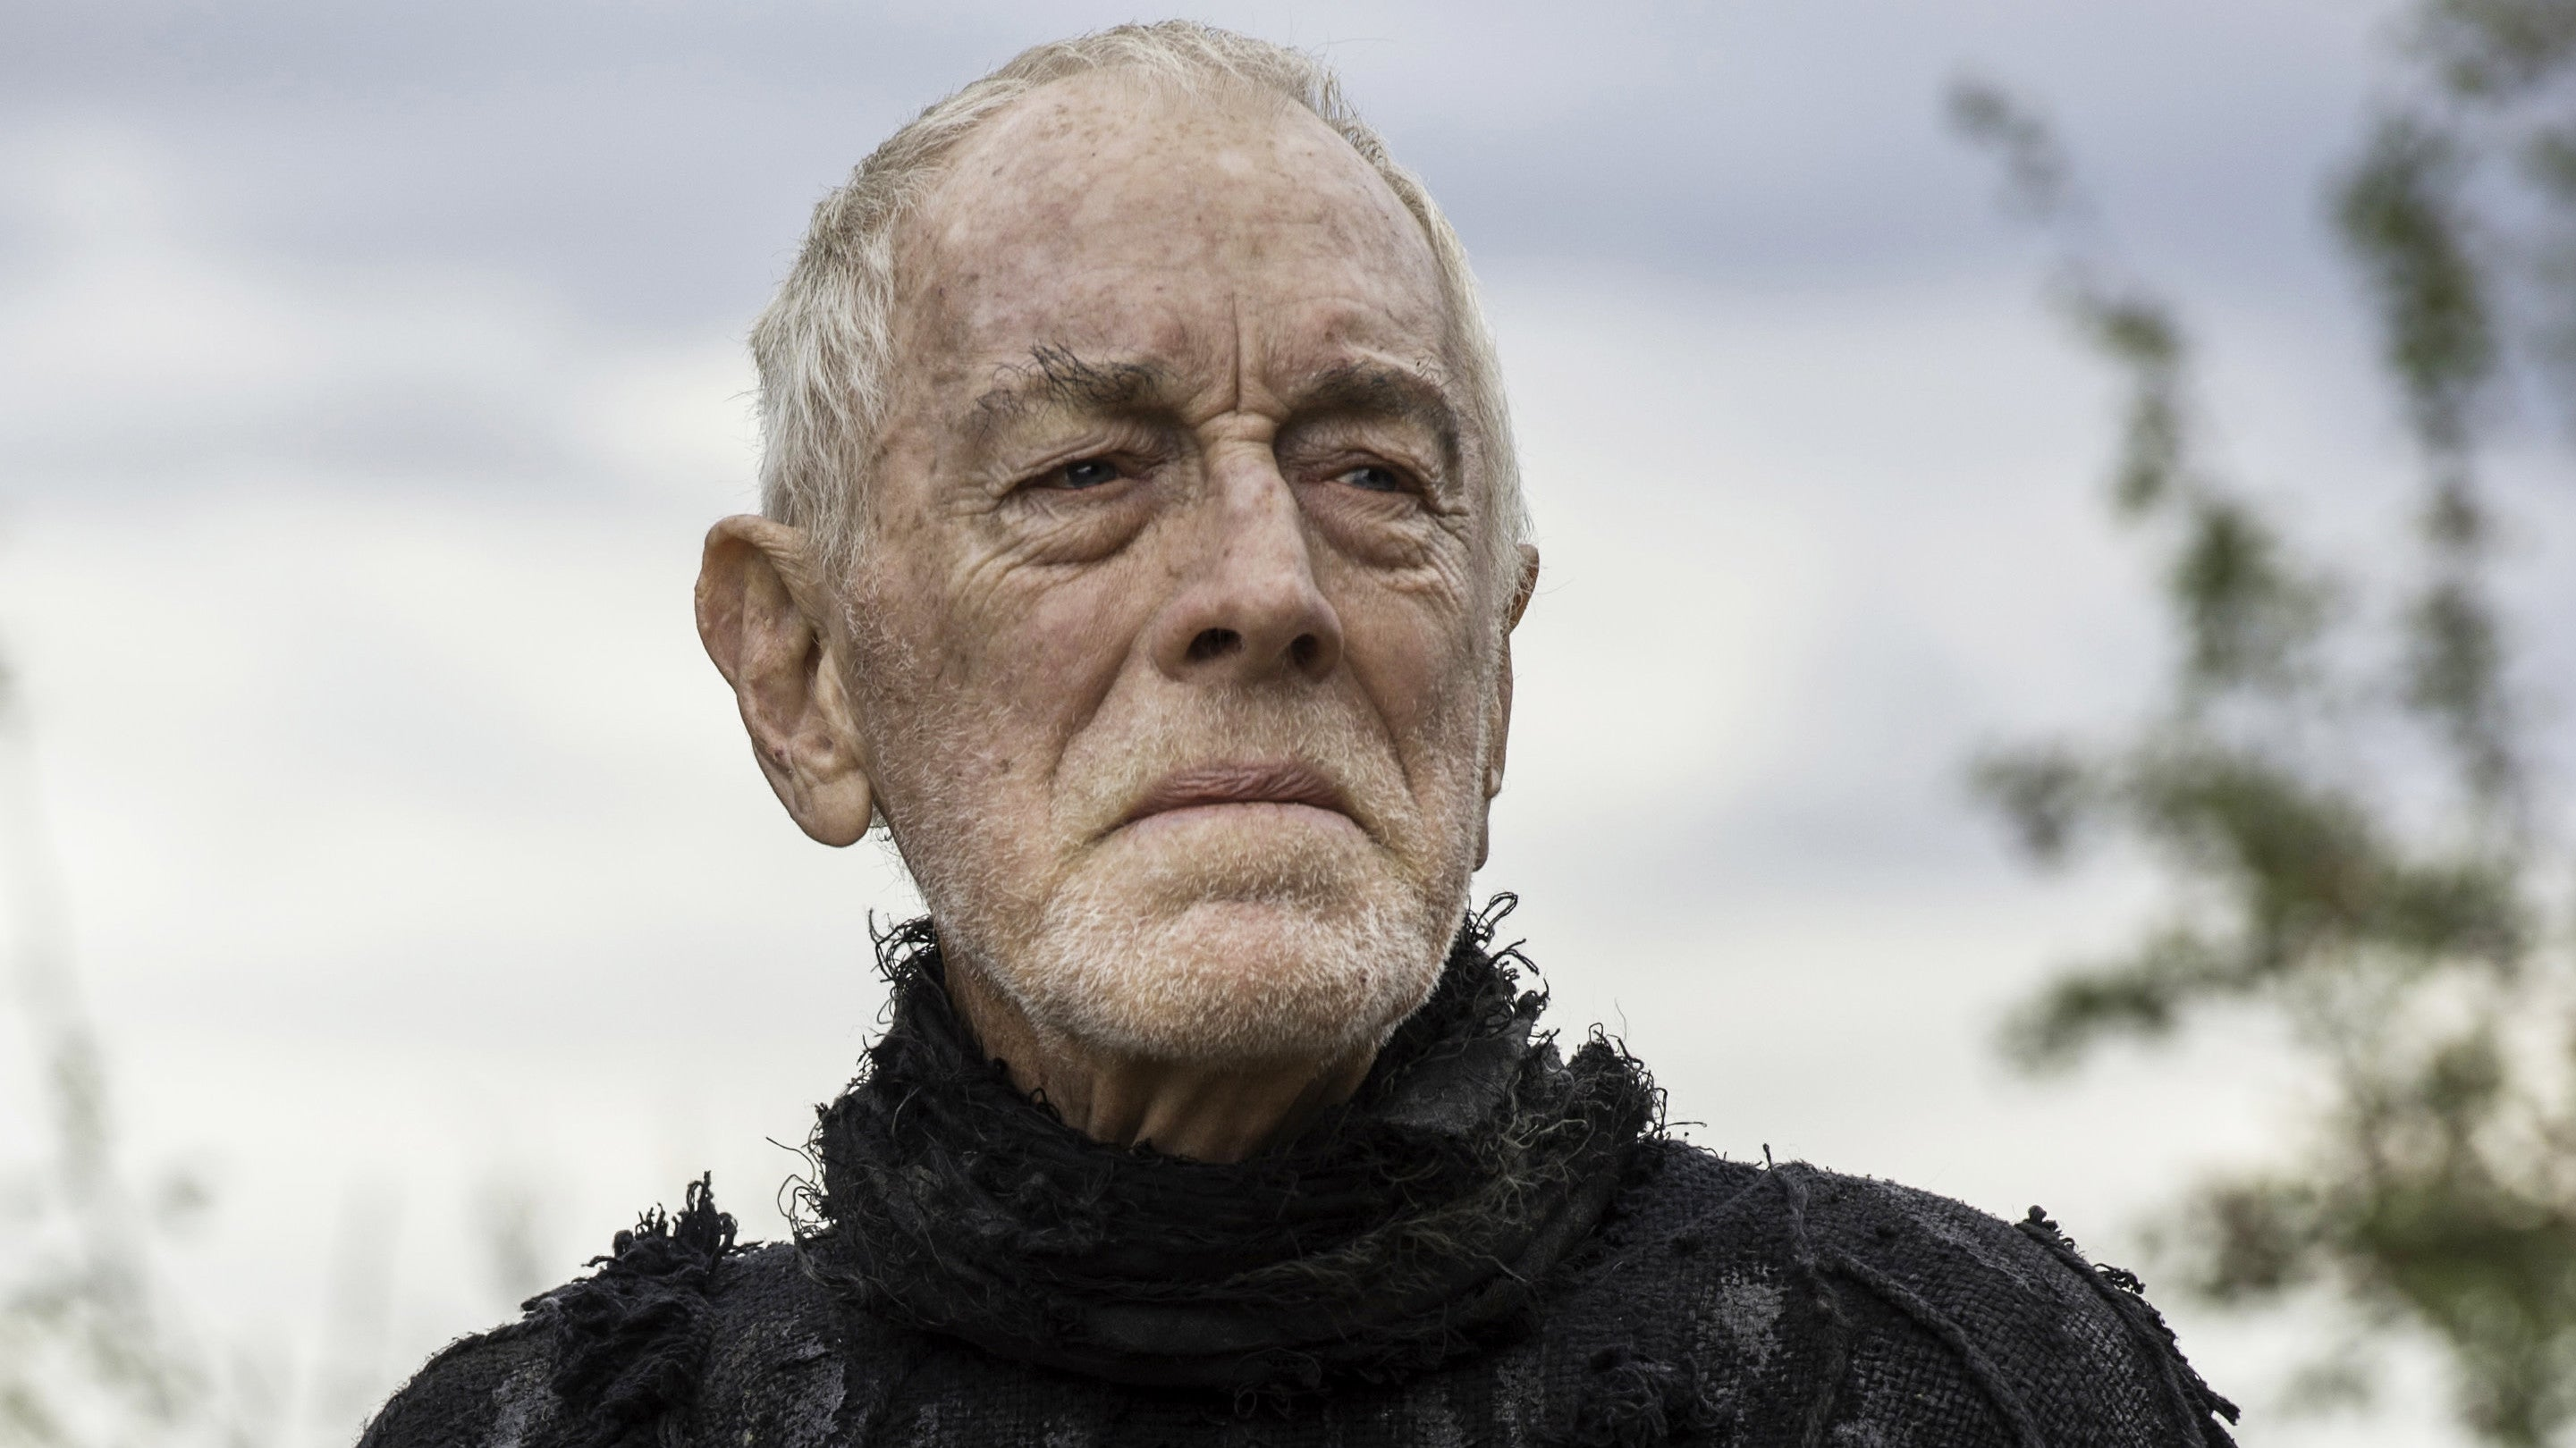 Max Von Sydow, Exorcist And Game Of Thrones Legend, Has Died